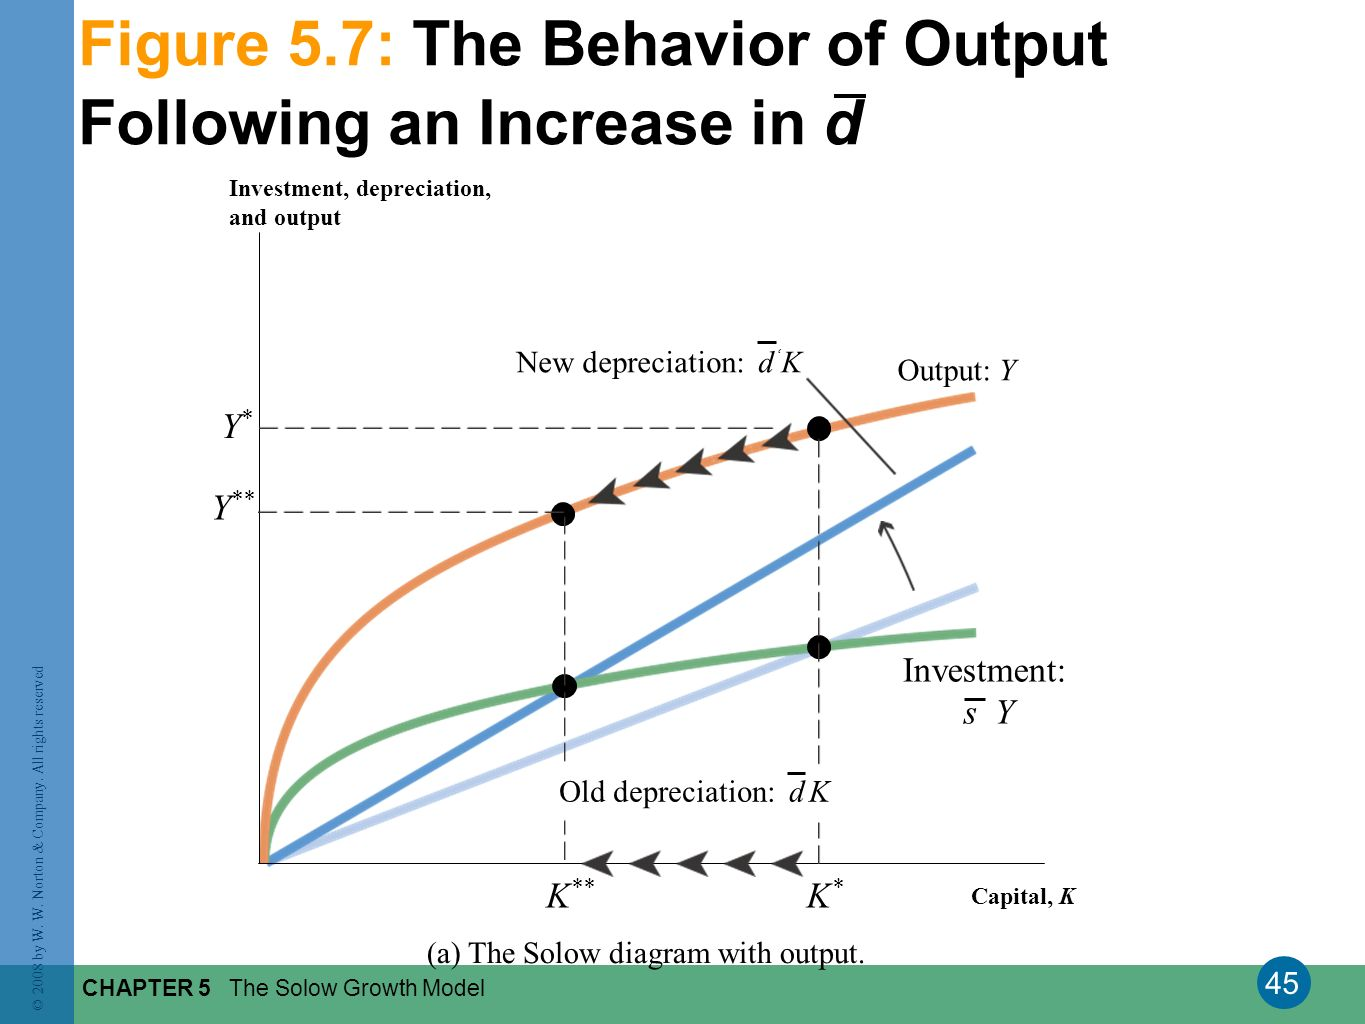 Figure 5.7: The Behavior of Output Following an Increase in d